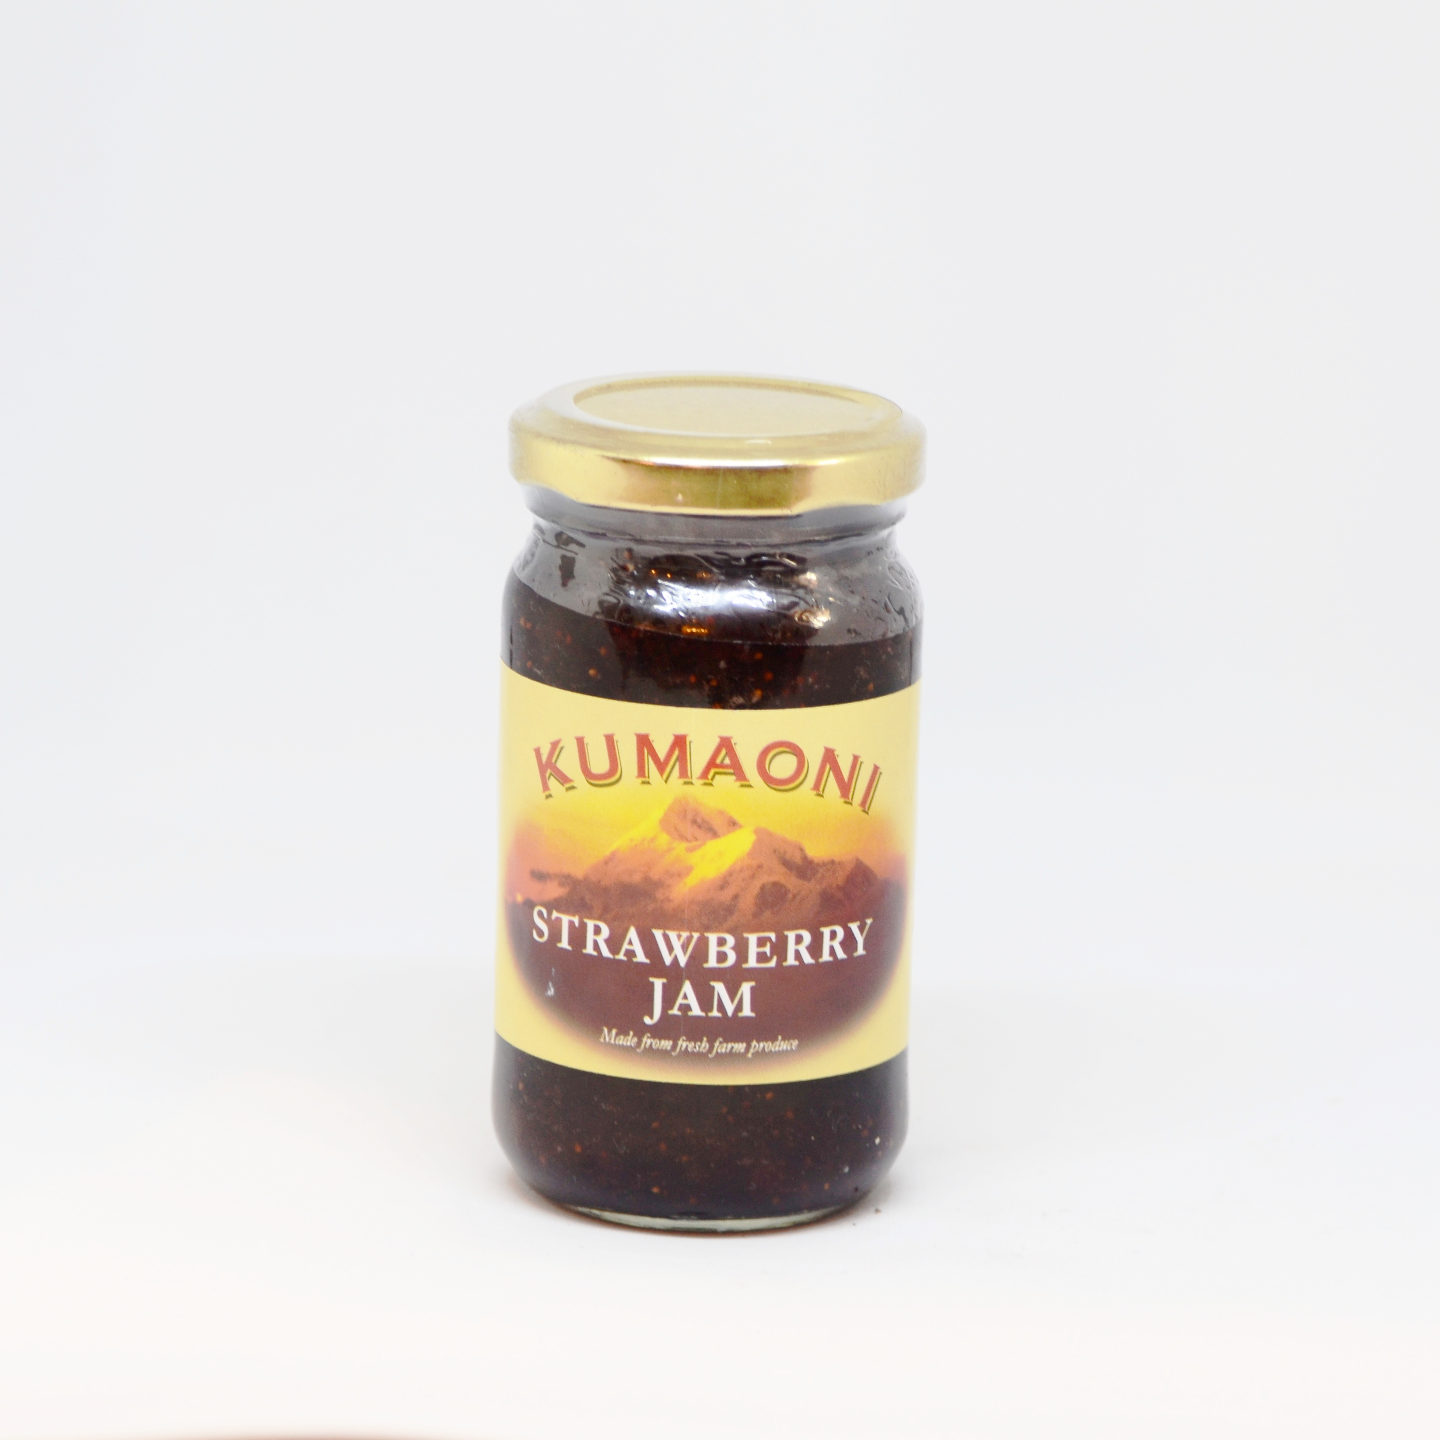 Kumaoni Strawberry Jam 250g